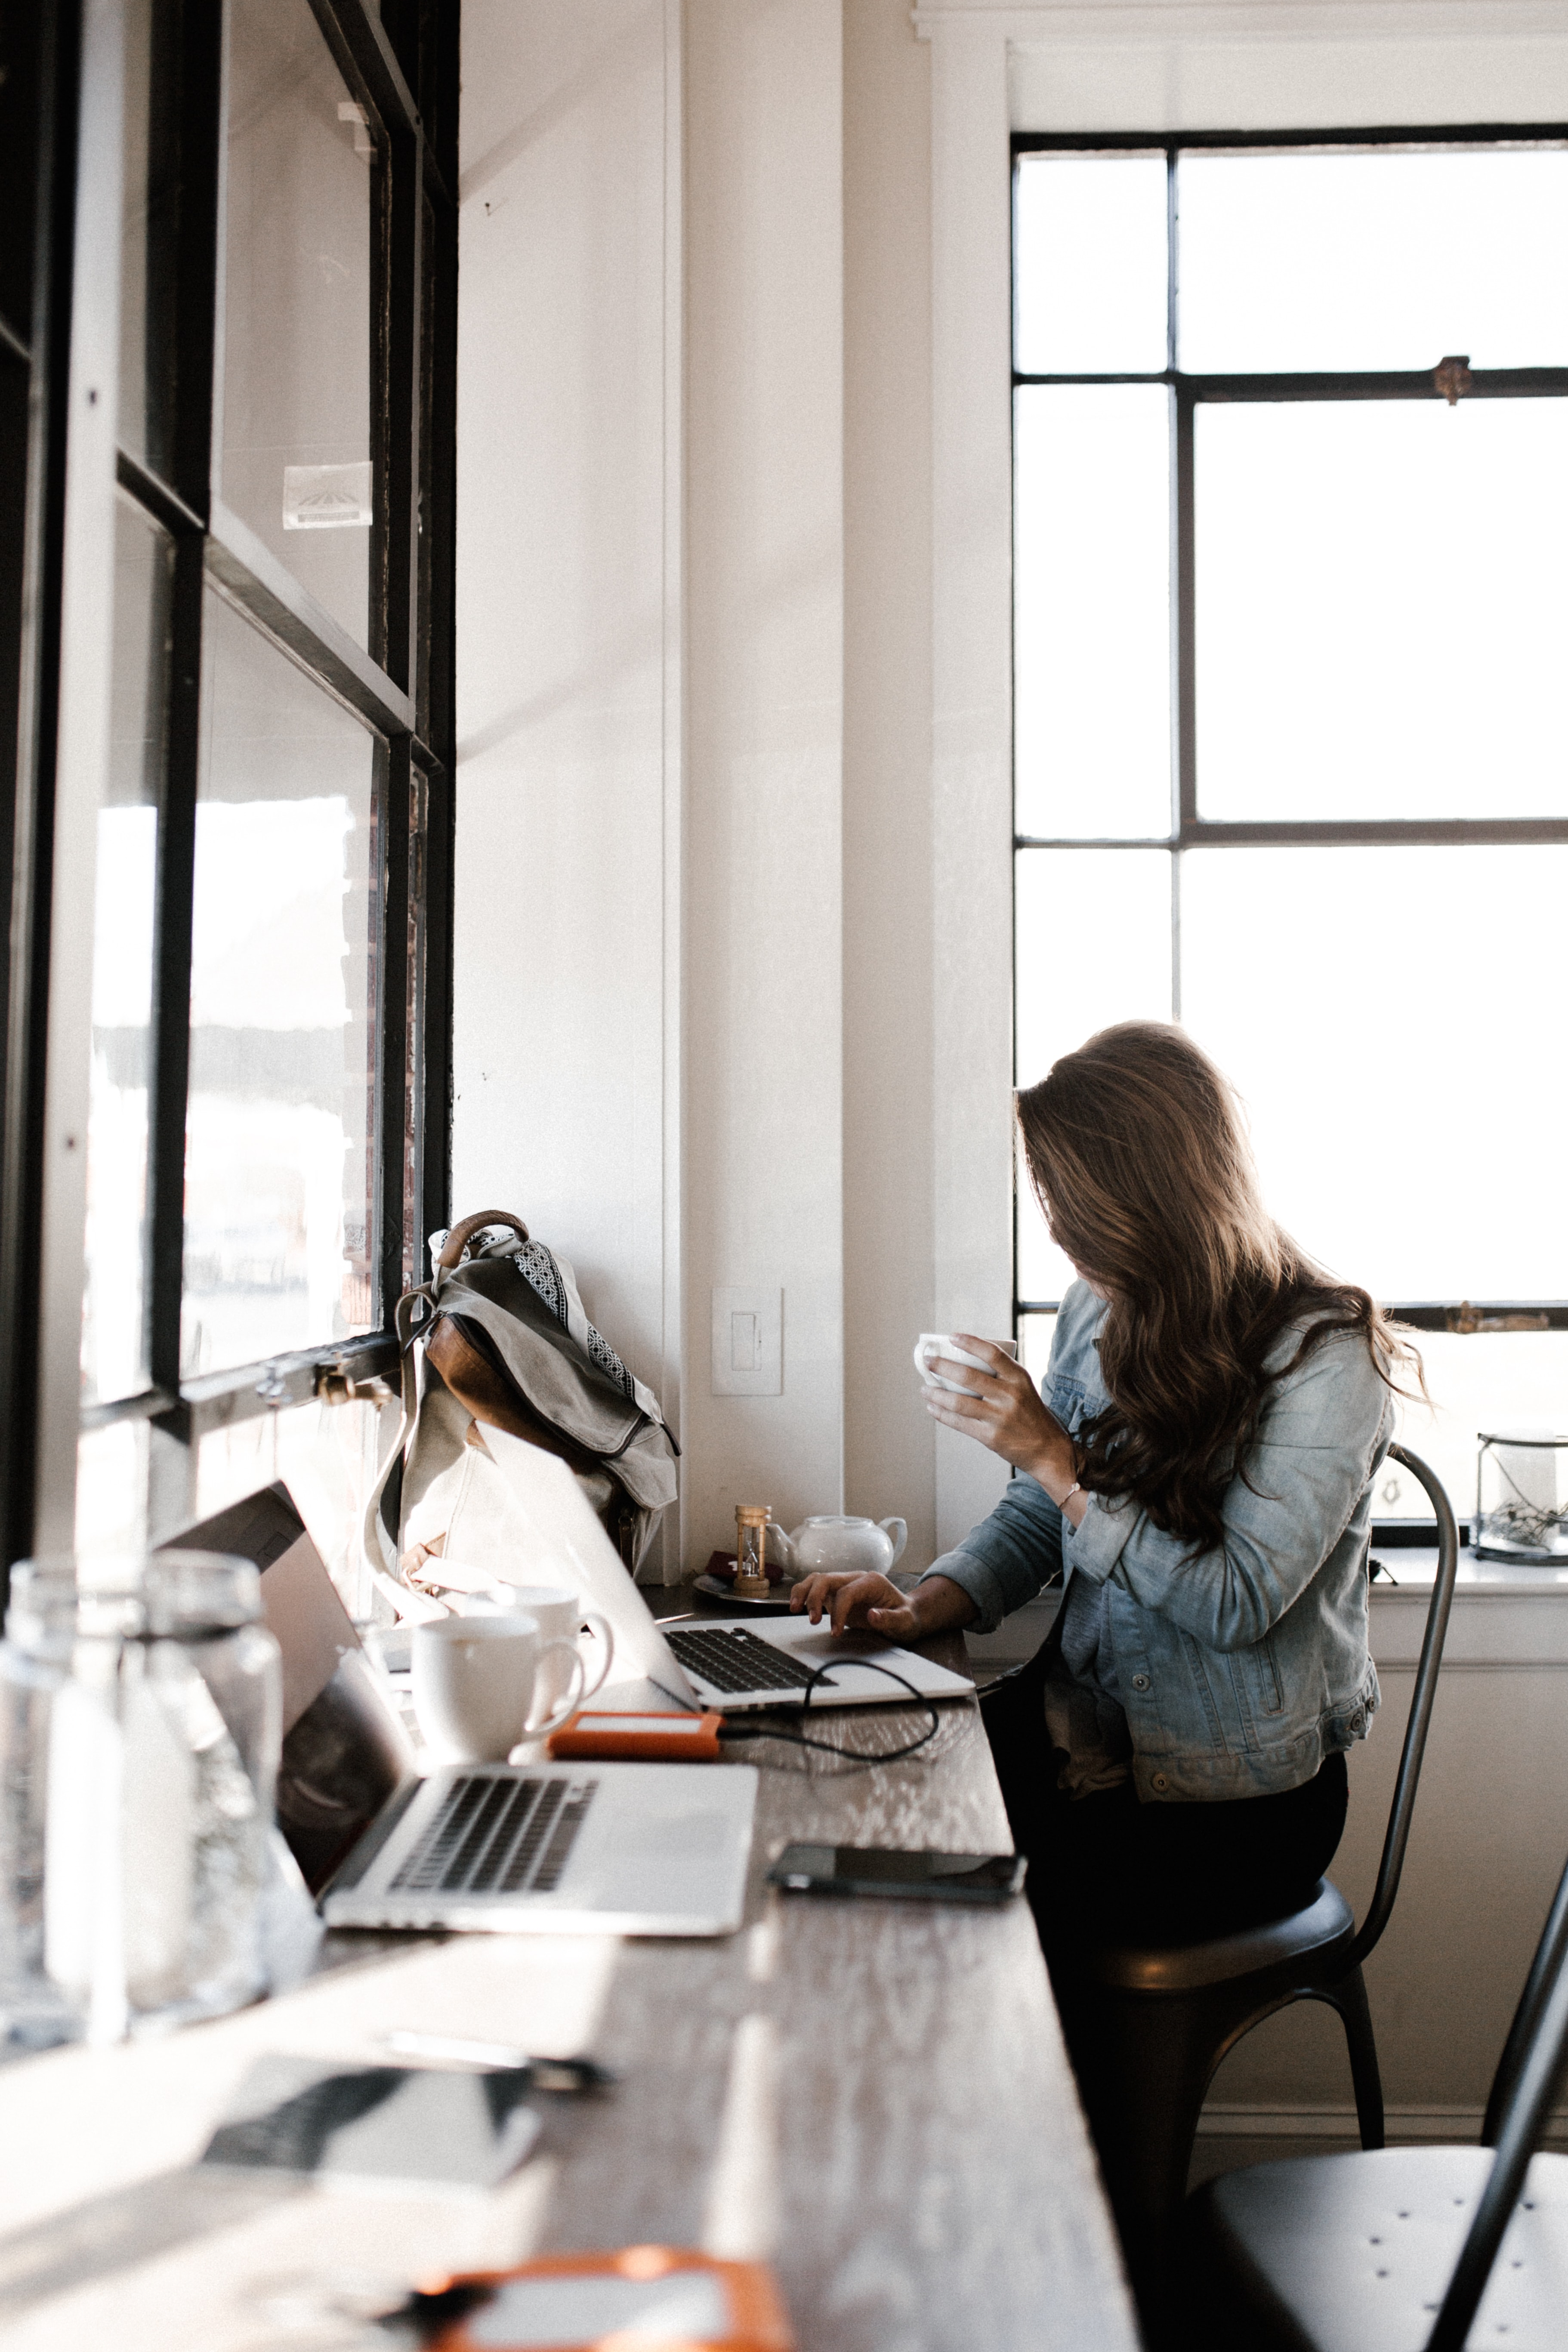 woman works at desk on laptop using technology